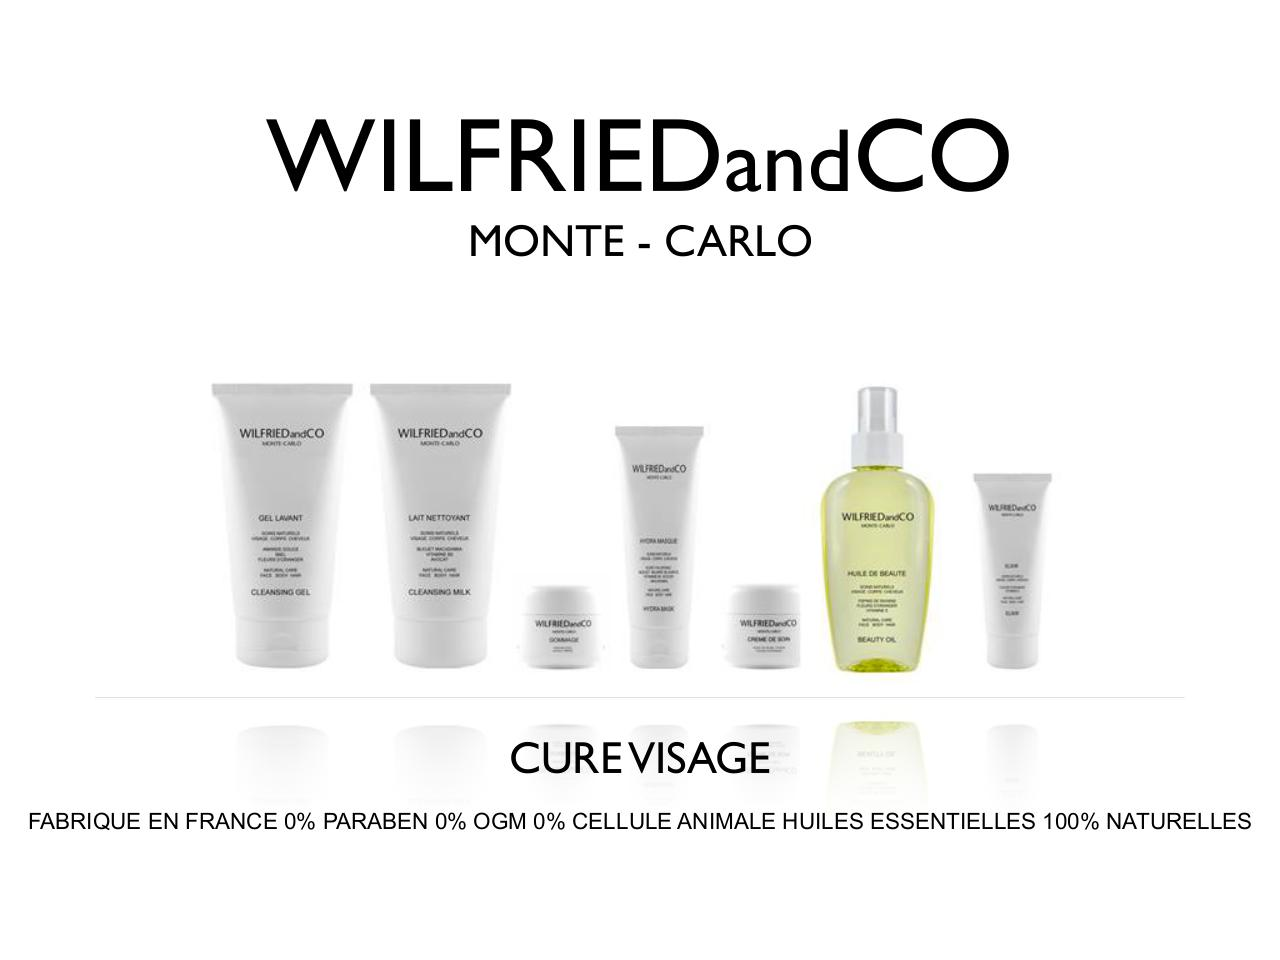 2 _Les cures WILFRIEDandCO_ ULTRA-REPARATRICE VISAGE.pdf - page 1/18